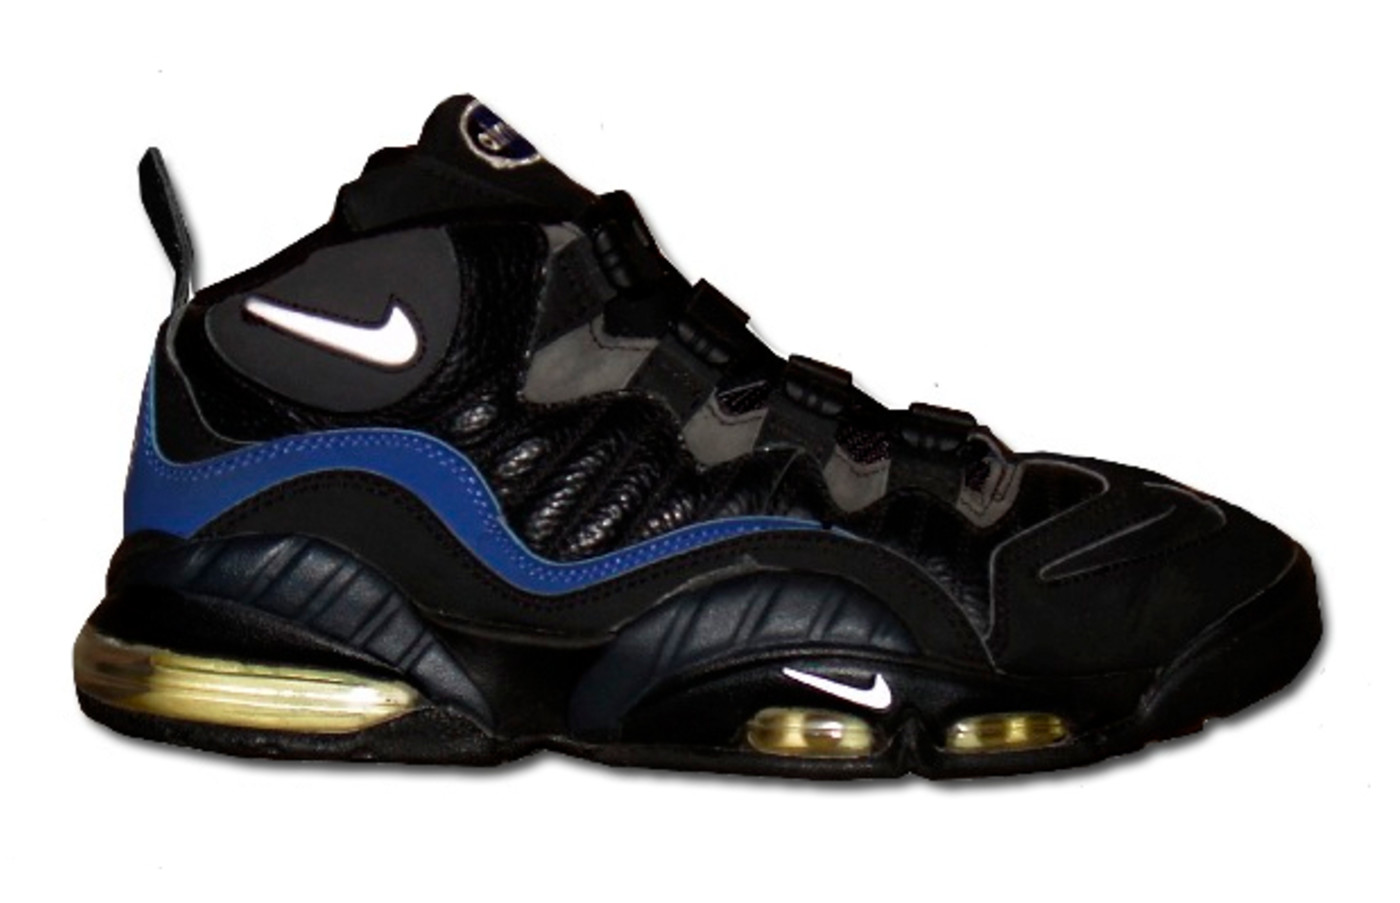 juicio Estallar Gallina  The 25 Best Nike Air Max Sneakers Of All-Time | Complex